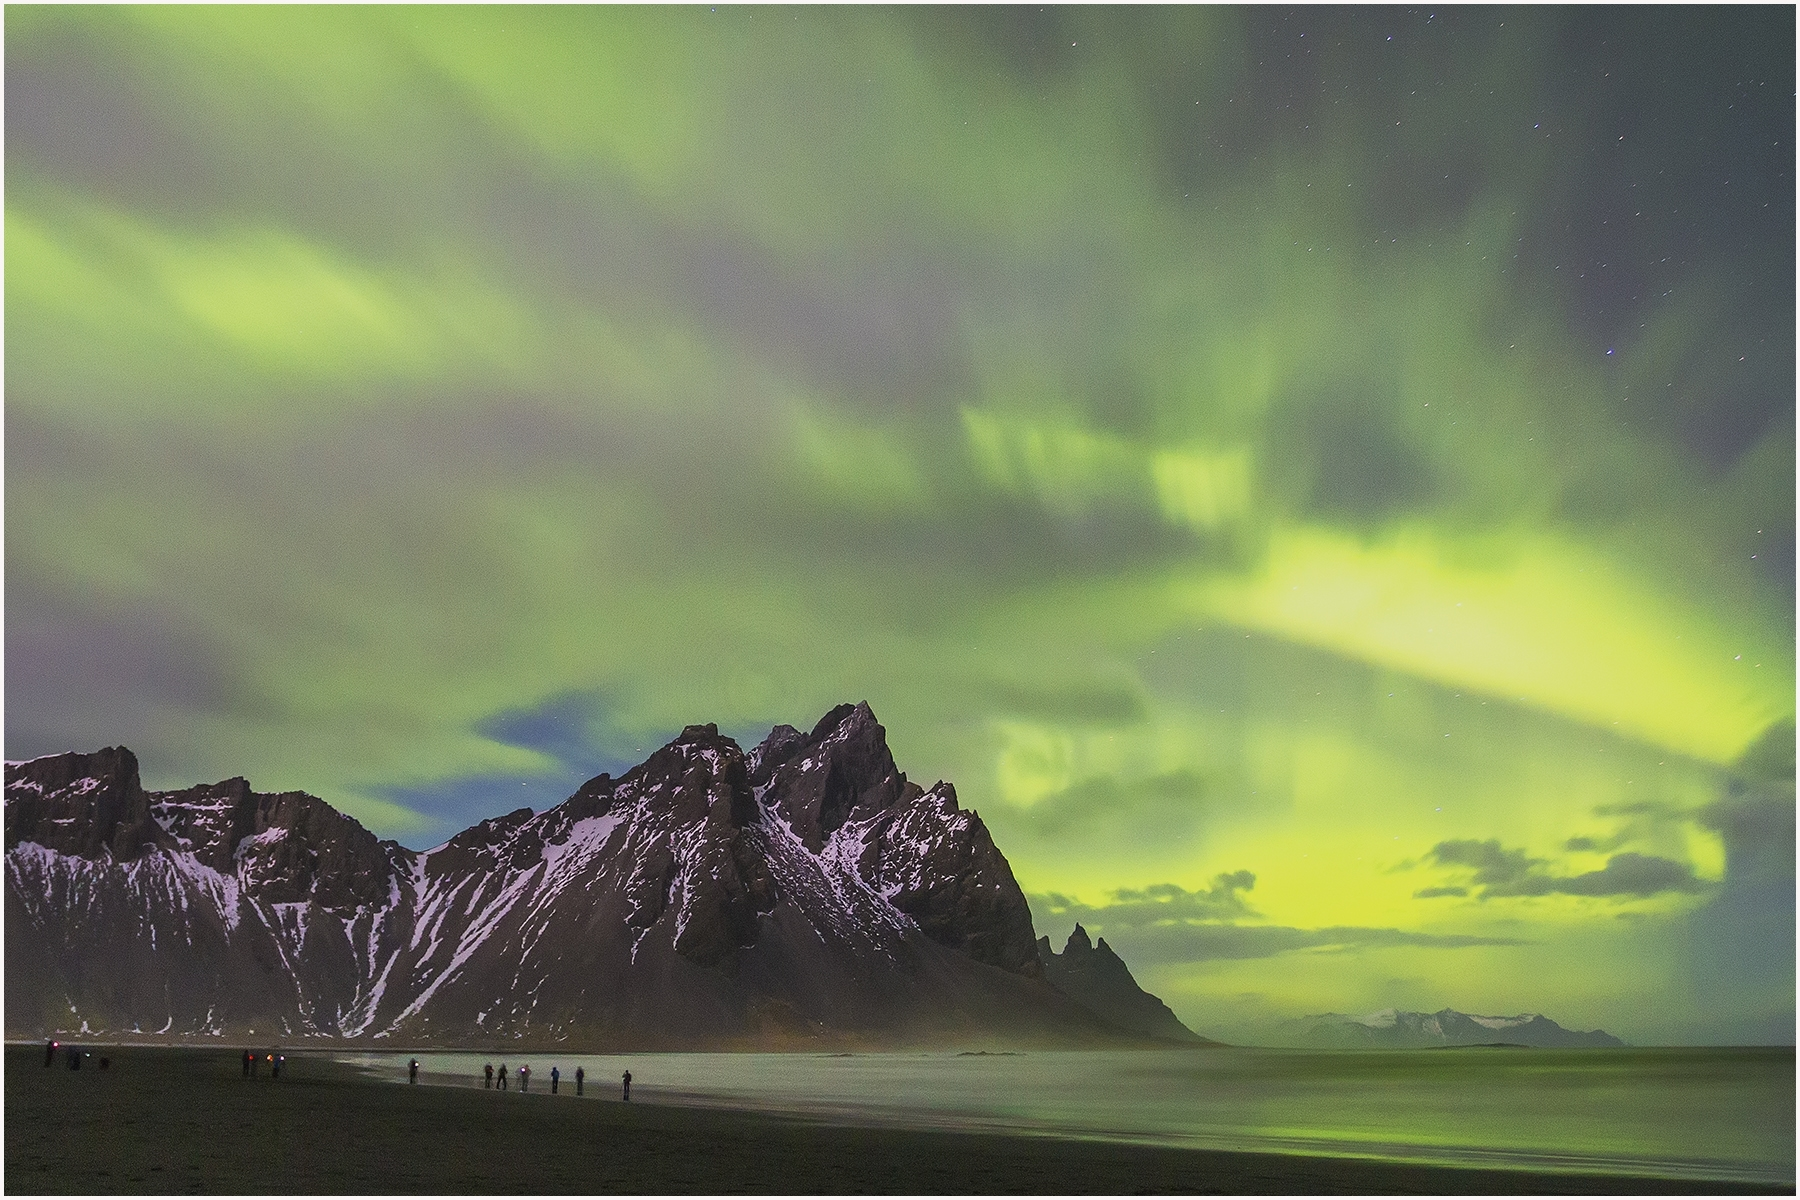 'A group of photographers capturing northern light images at Vestrahorn, Iceland' (TM Best in Show) by Shinnan Kiang - LV